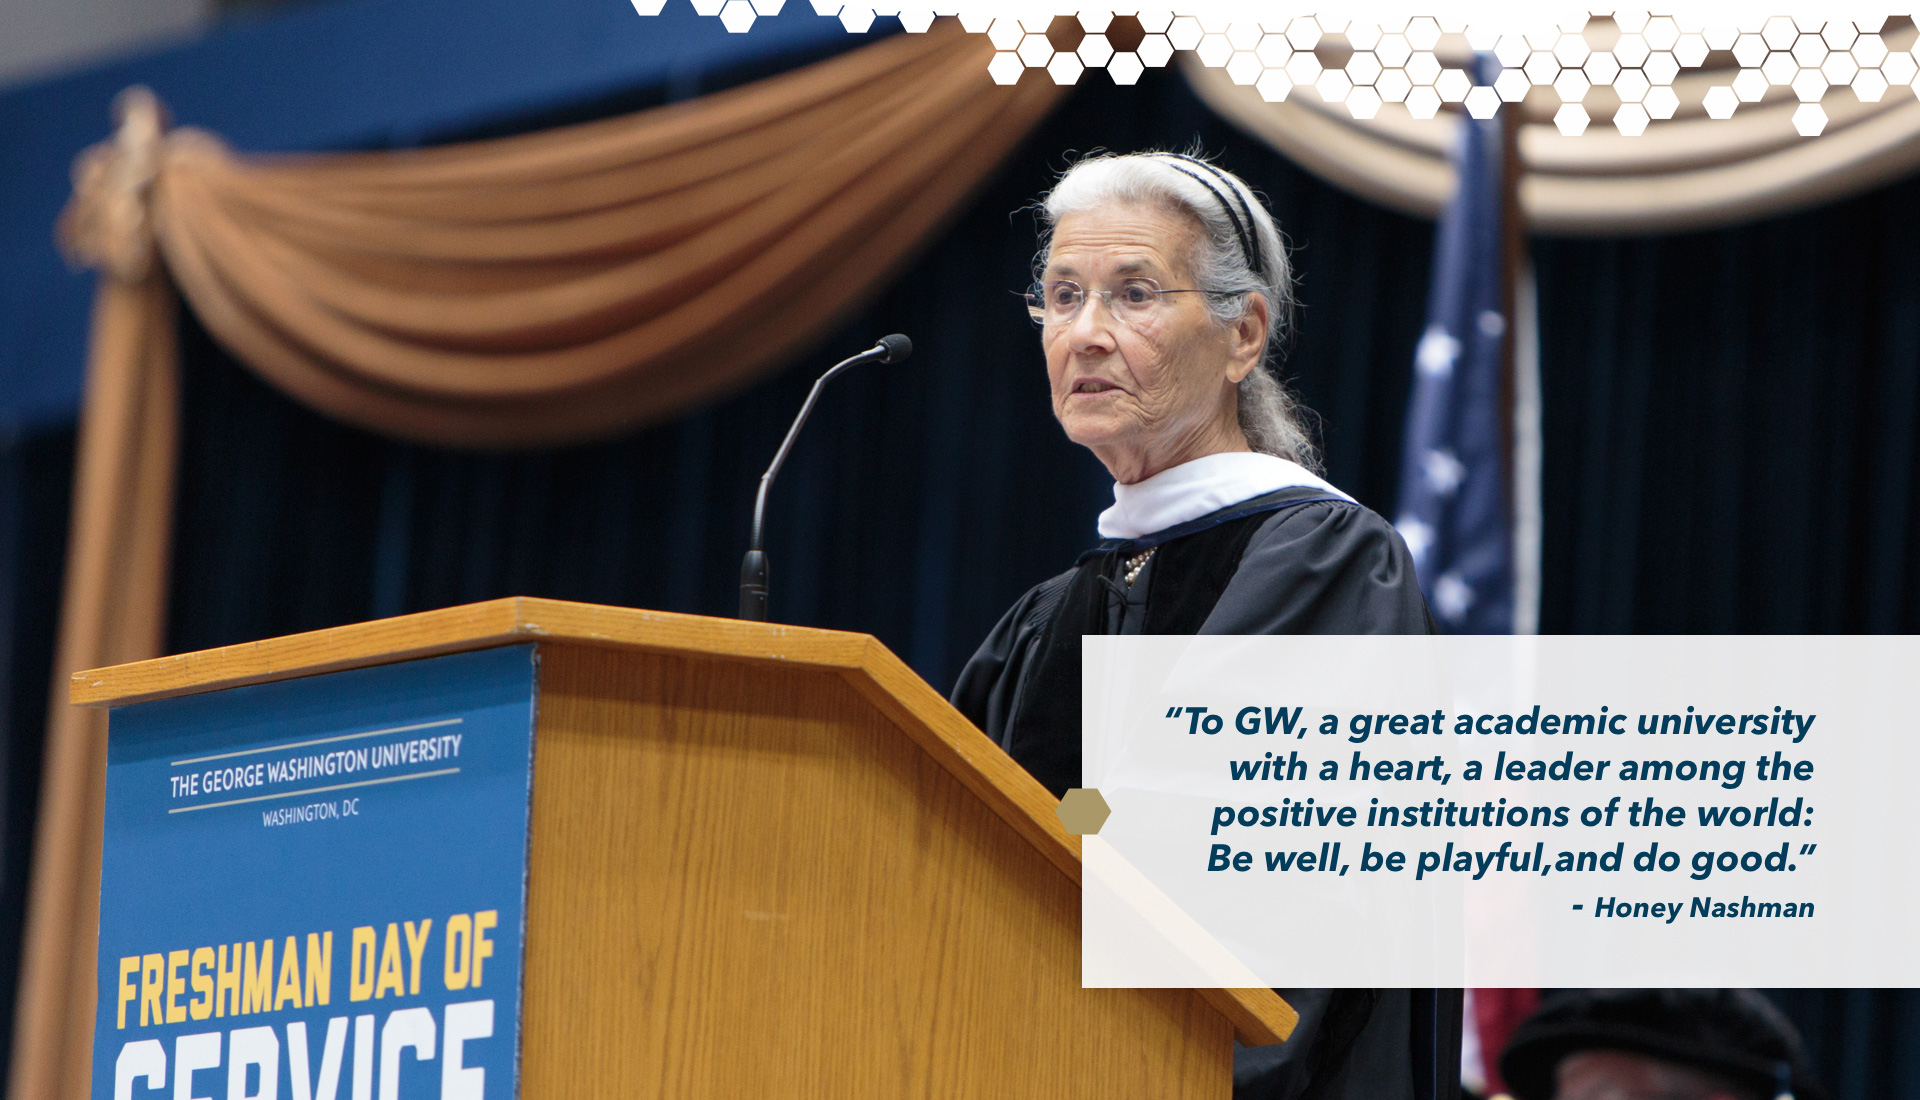 To GW, a great academic university with a heart, a leader among the positive institutions of the world: Be well, be playful, and do good. Honey Nashman